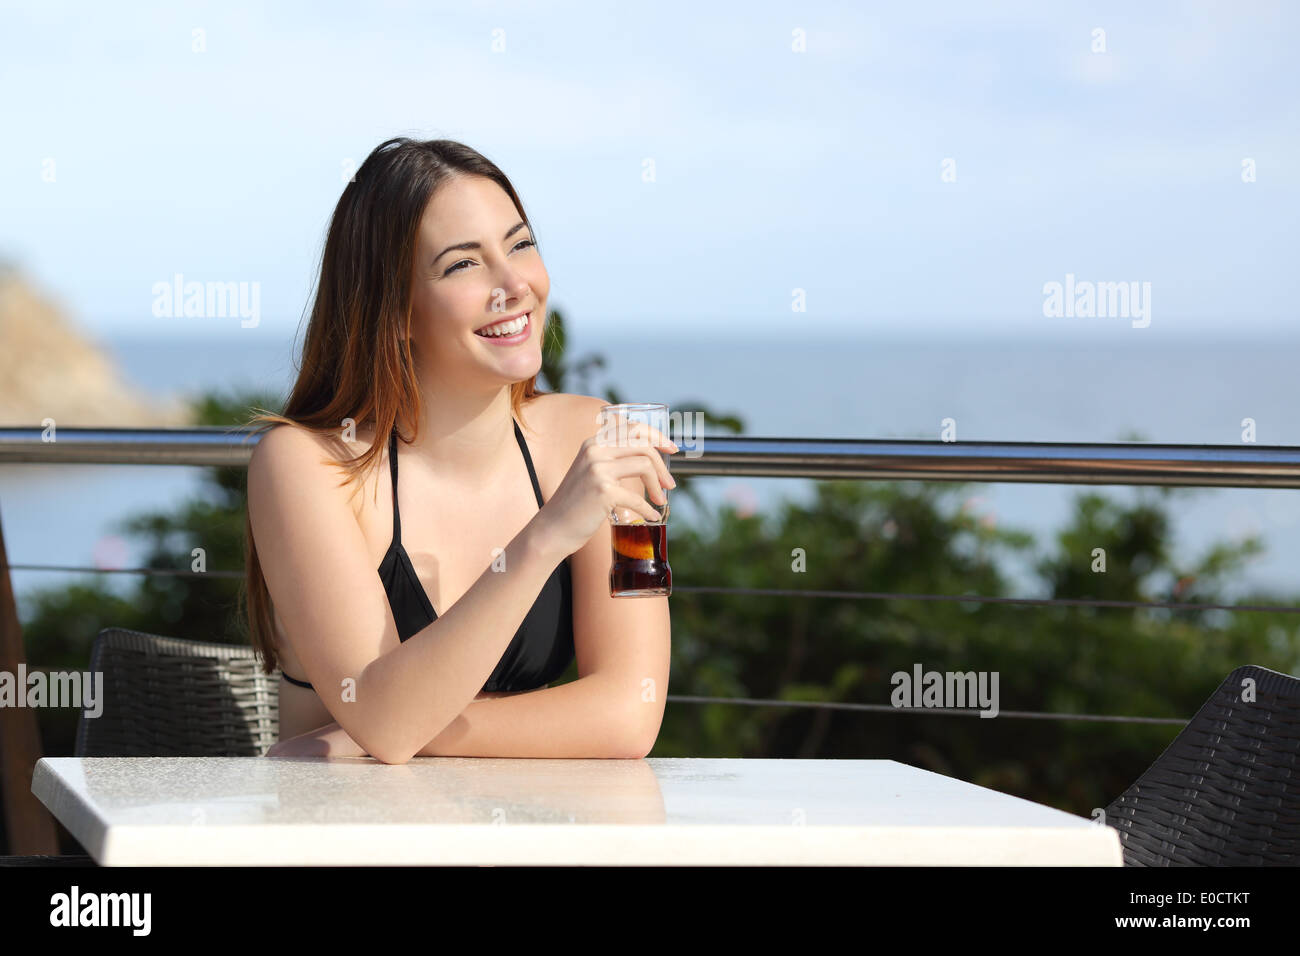 Woman on vacation drinking in a hotel terrace with the beach in the background - Stock Image